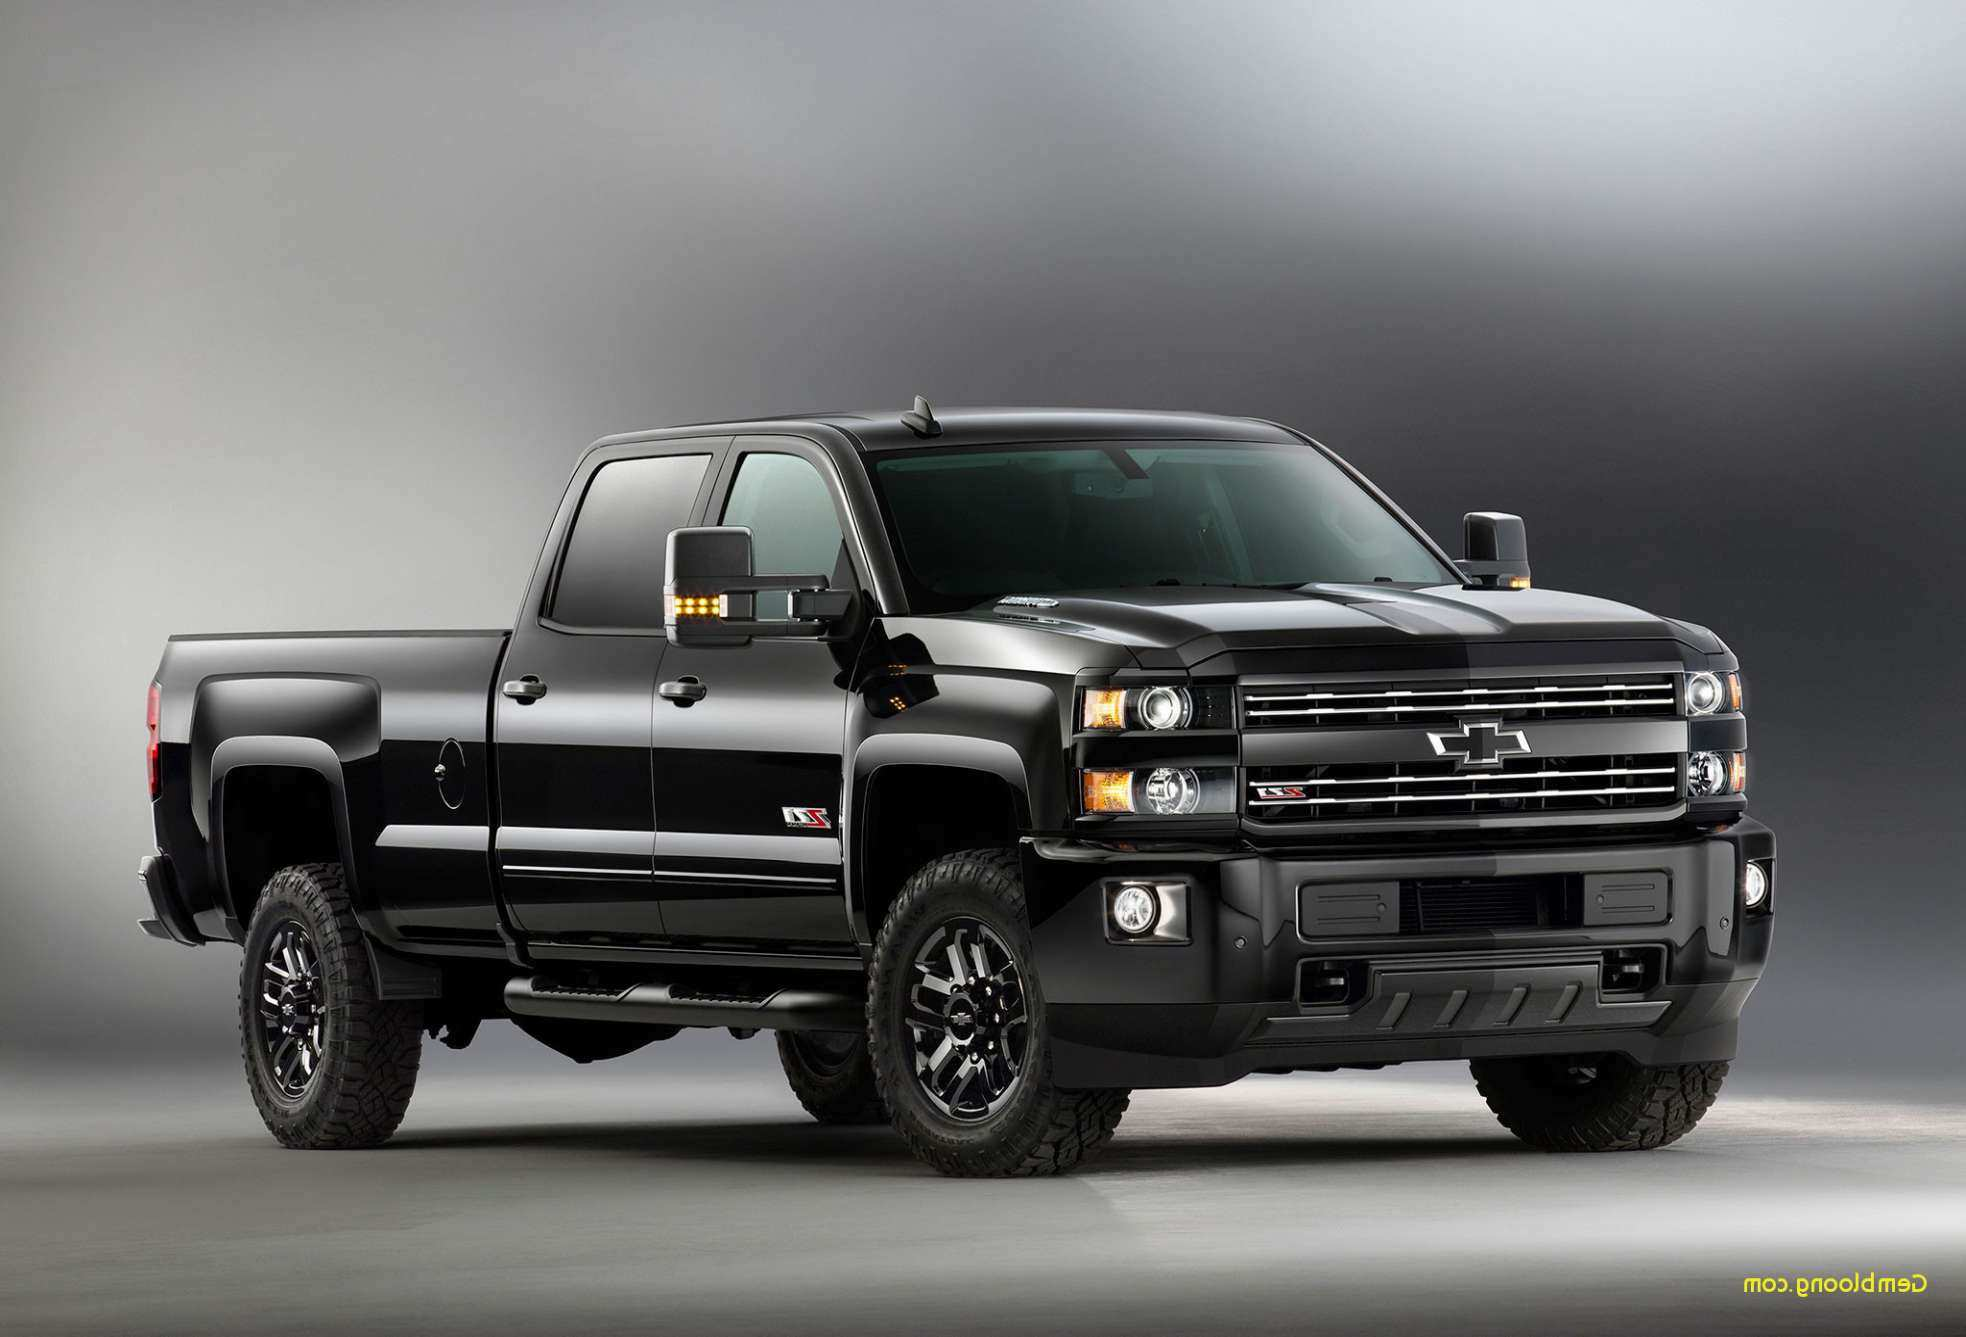 58 Best Review 2020 Chevy Silverado 1500 2500 Spesification with 2020 Chevy Silverado 1500 2500